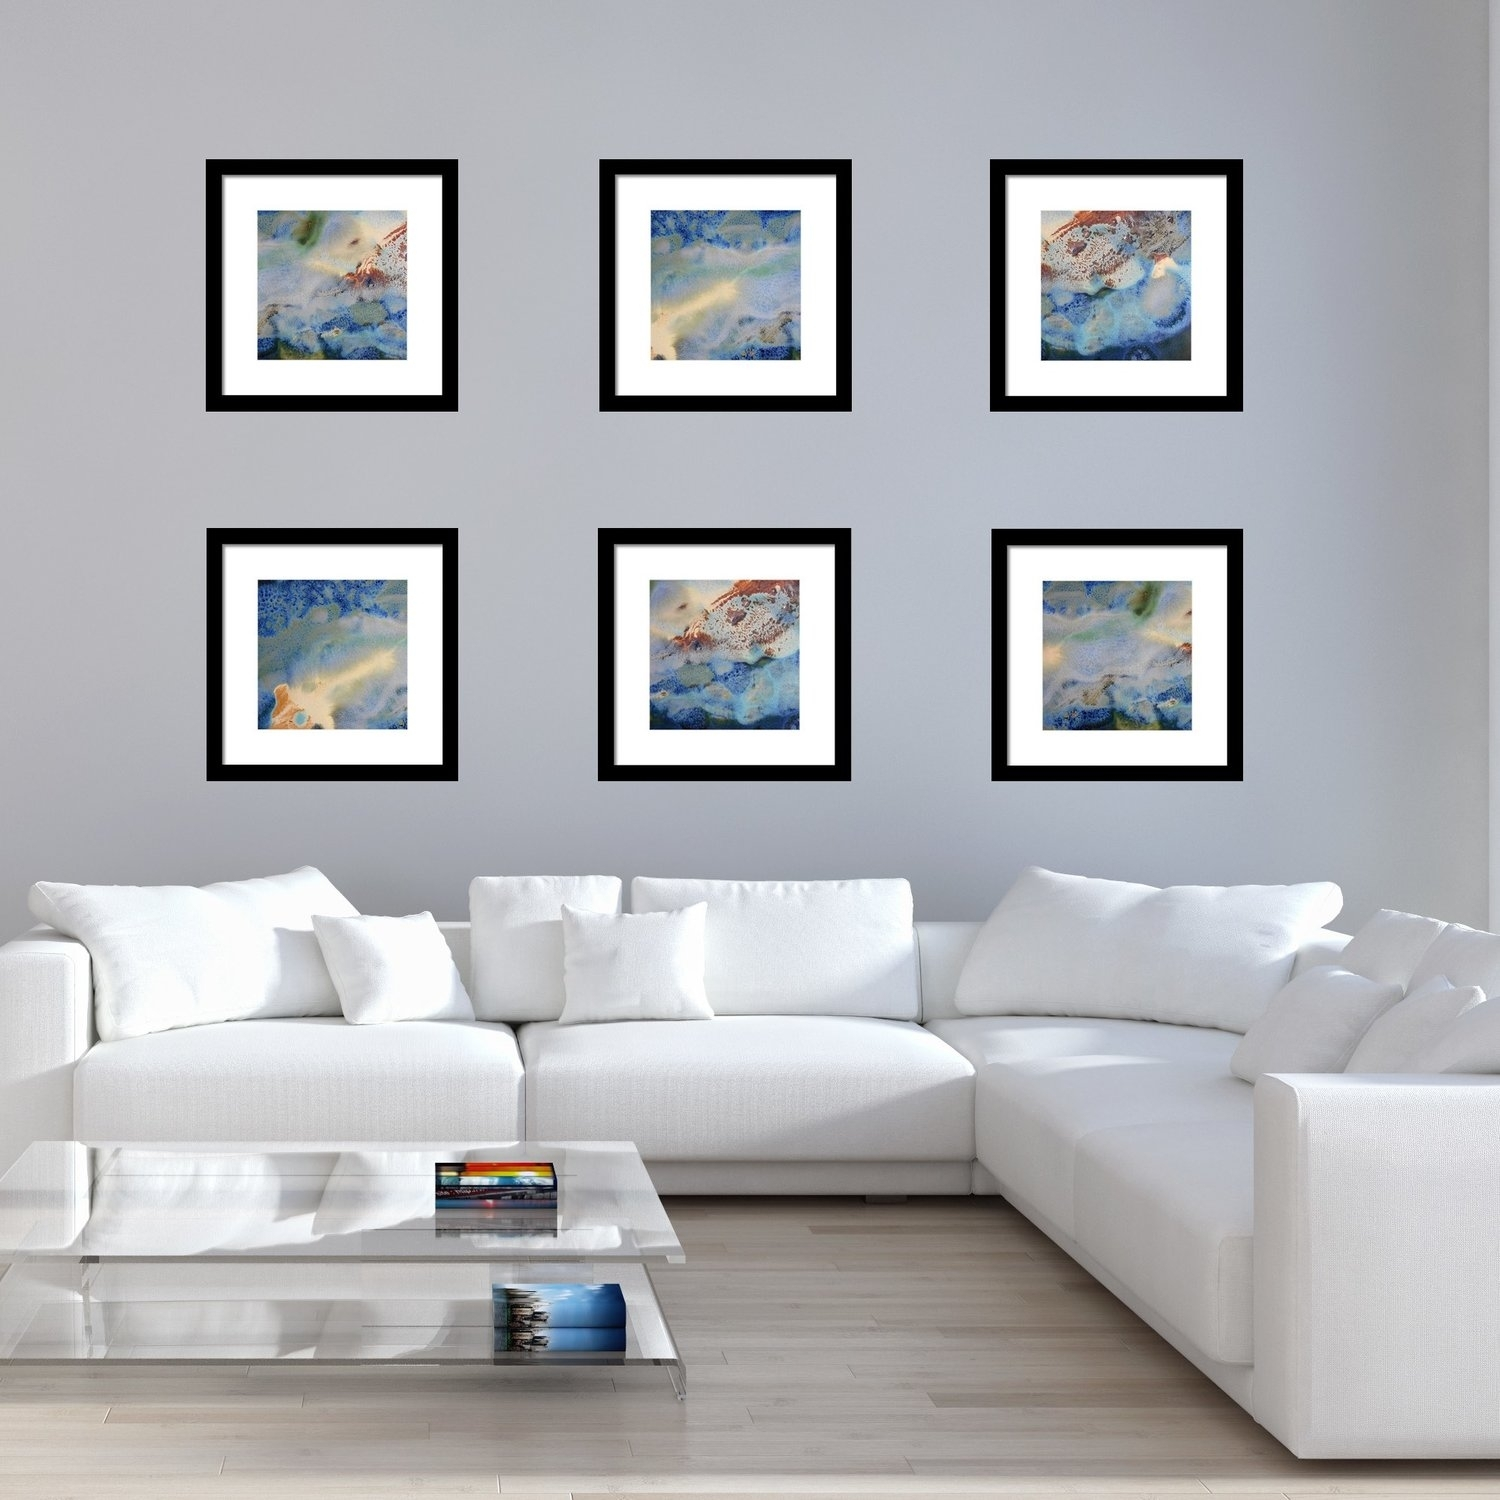 Set Of 6 Abstract Framed Prints – Square #17, 18 & 19 | White In Current Framed Art Prints For Living Room (Gallery 4 of 15)